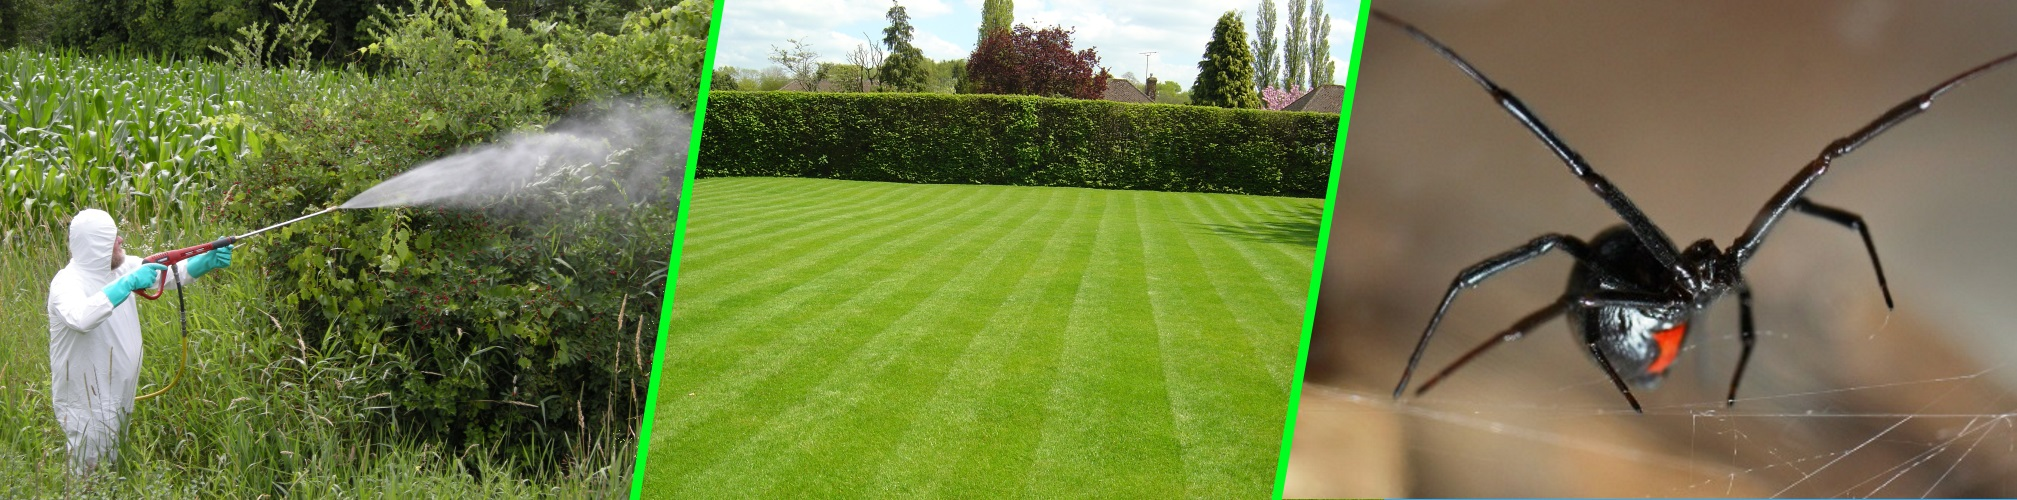 We offer lawn services as well as shrub and tree pruning